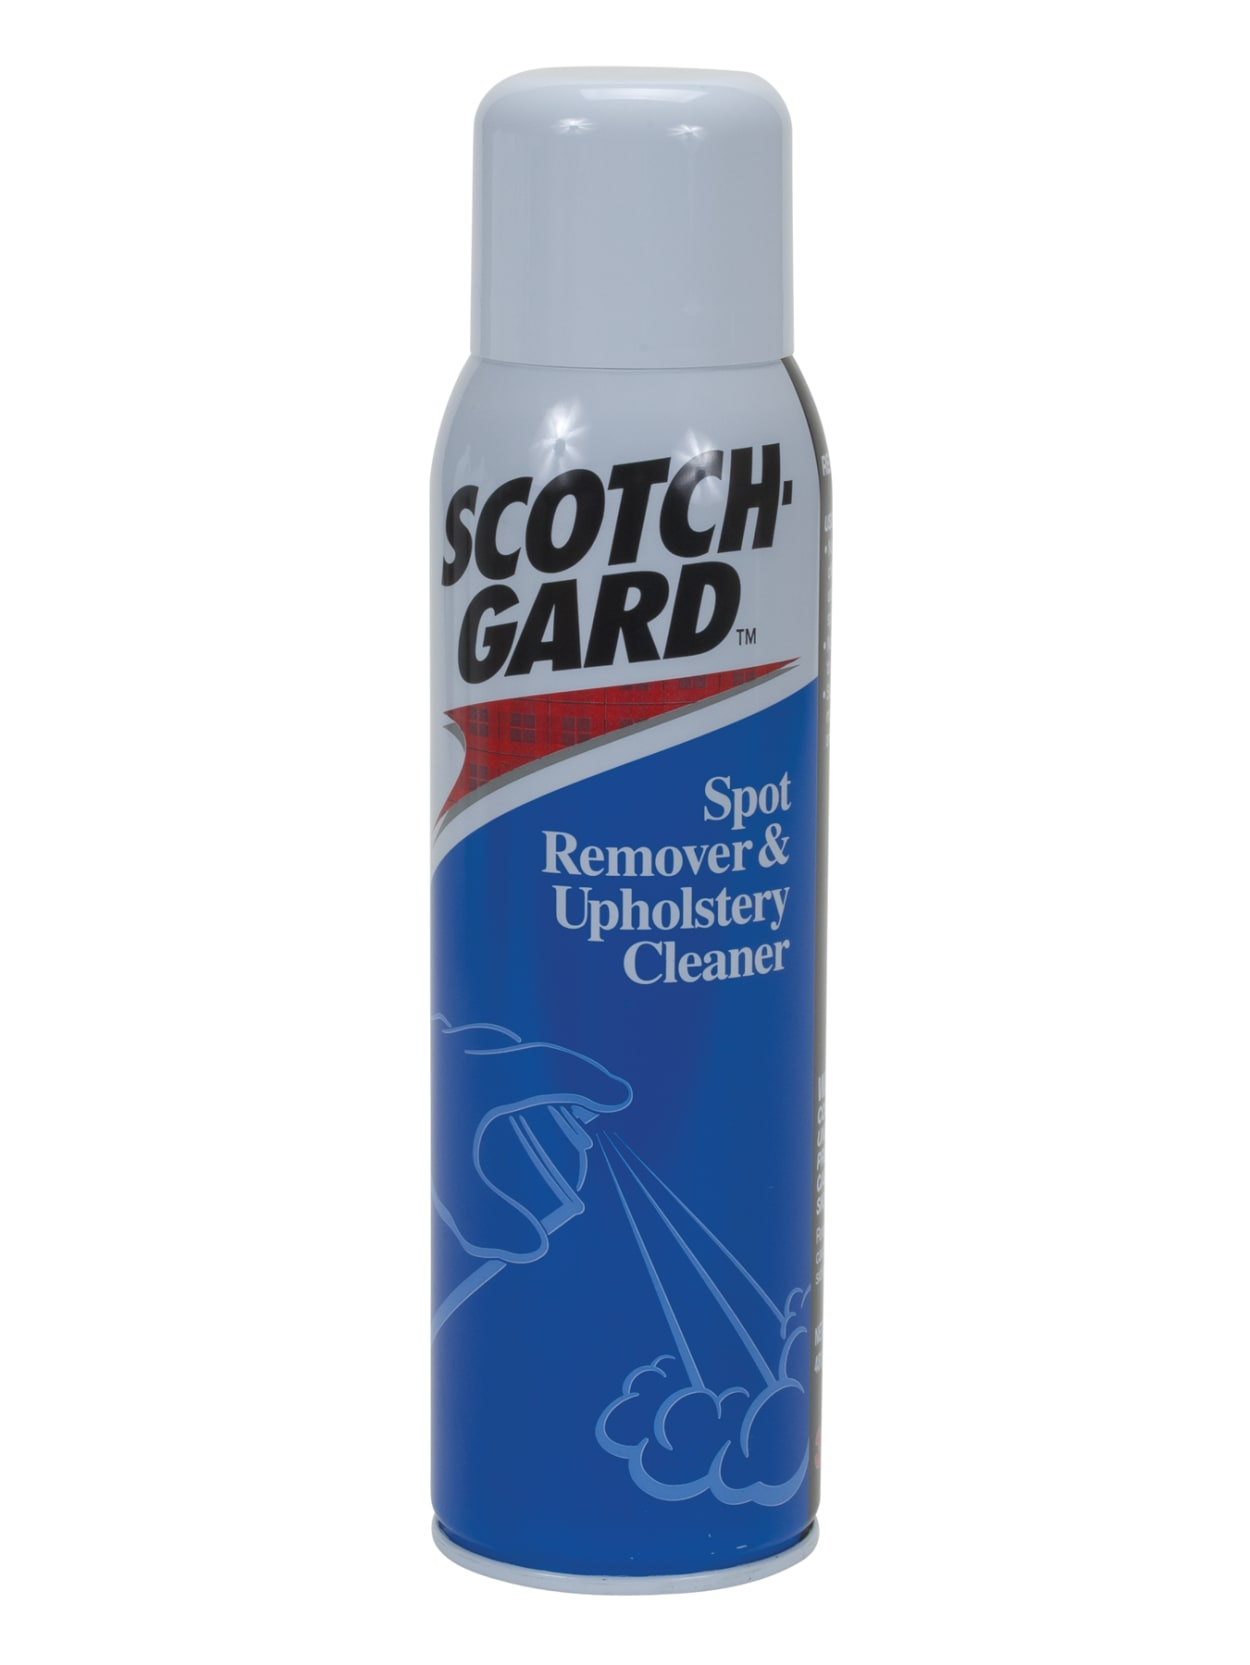 Scotchgard Spot Remover And Upholstery